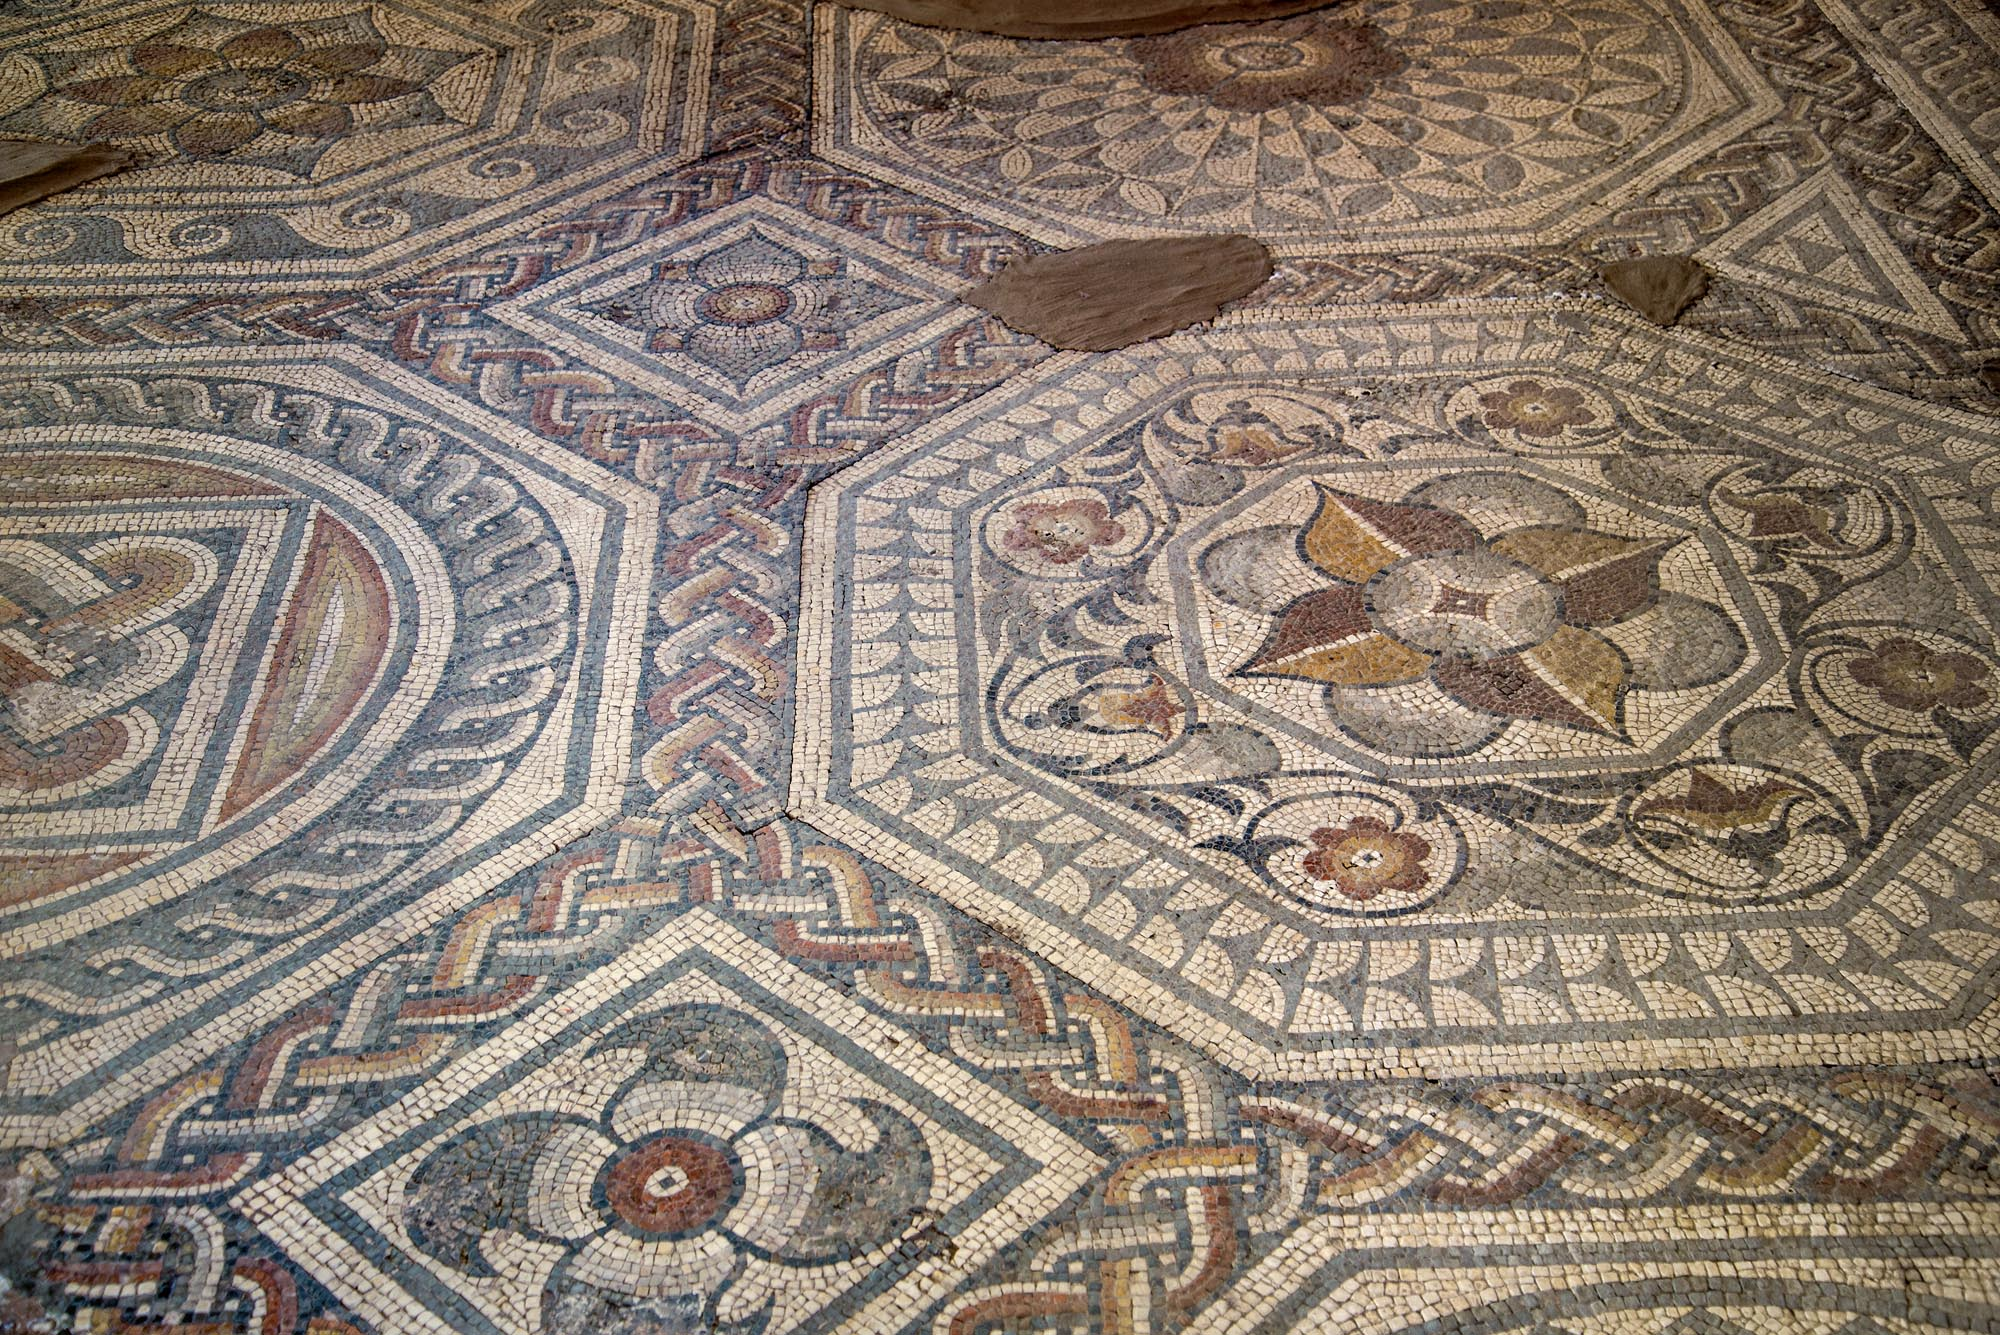 Part of the 2nd-century Blackfriars Mosaic discovered in 1832 at Jewry Wall Street, now beneath the former Leicester Central railway station. Originally preserved in its original location, it was moved to Jewry Wall Museum in the 1976 and is currently in storage -